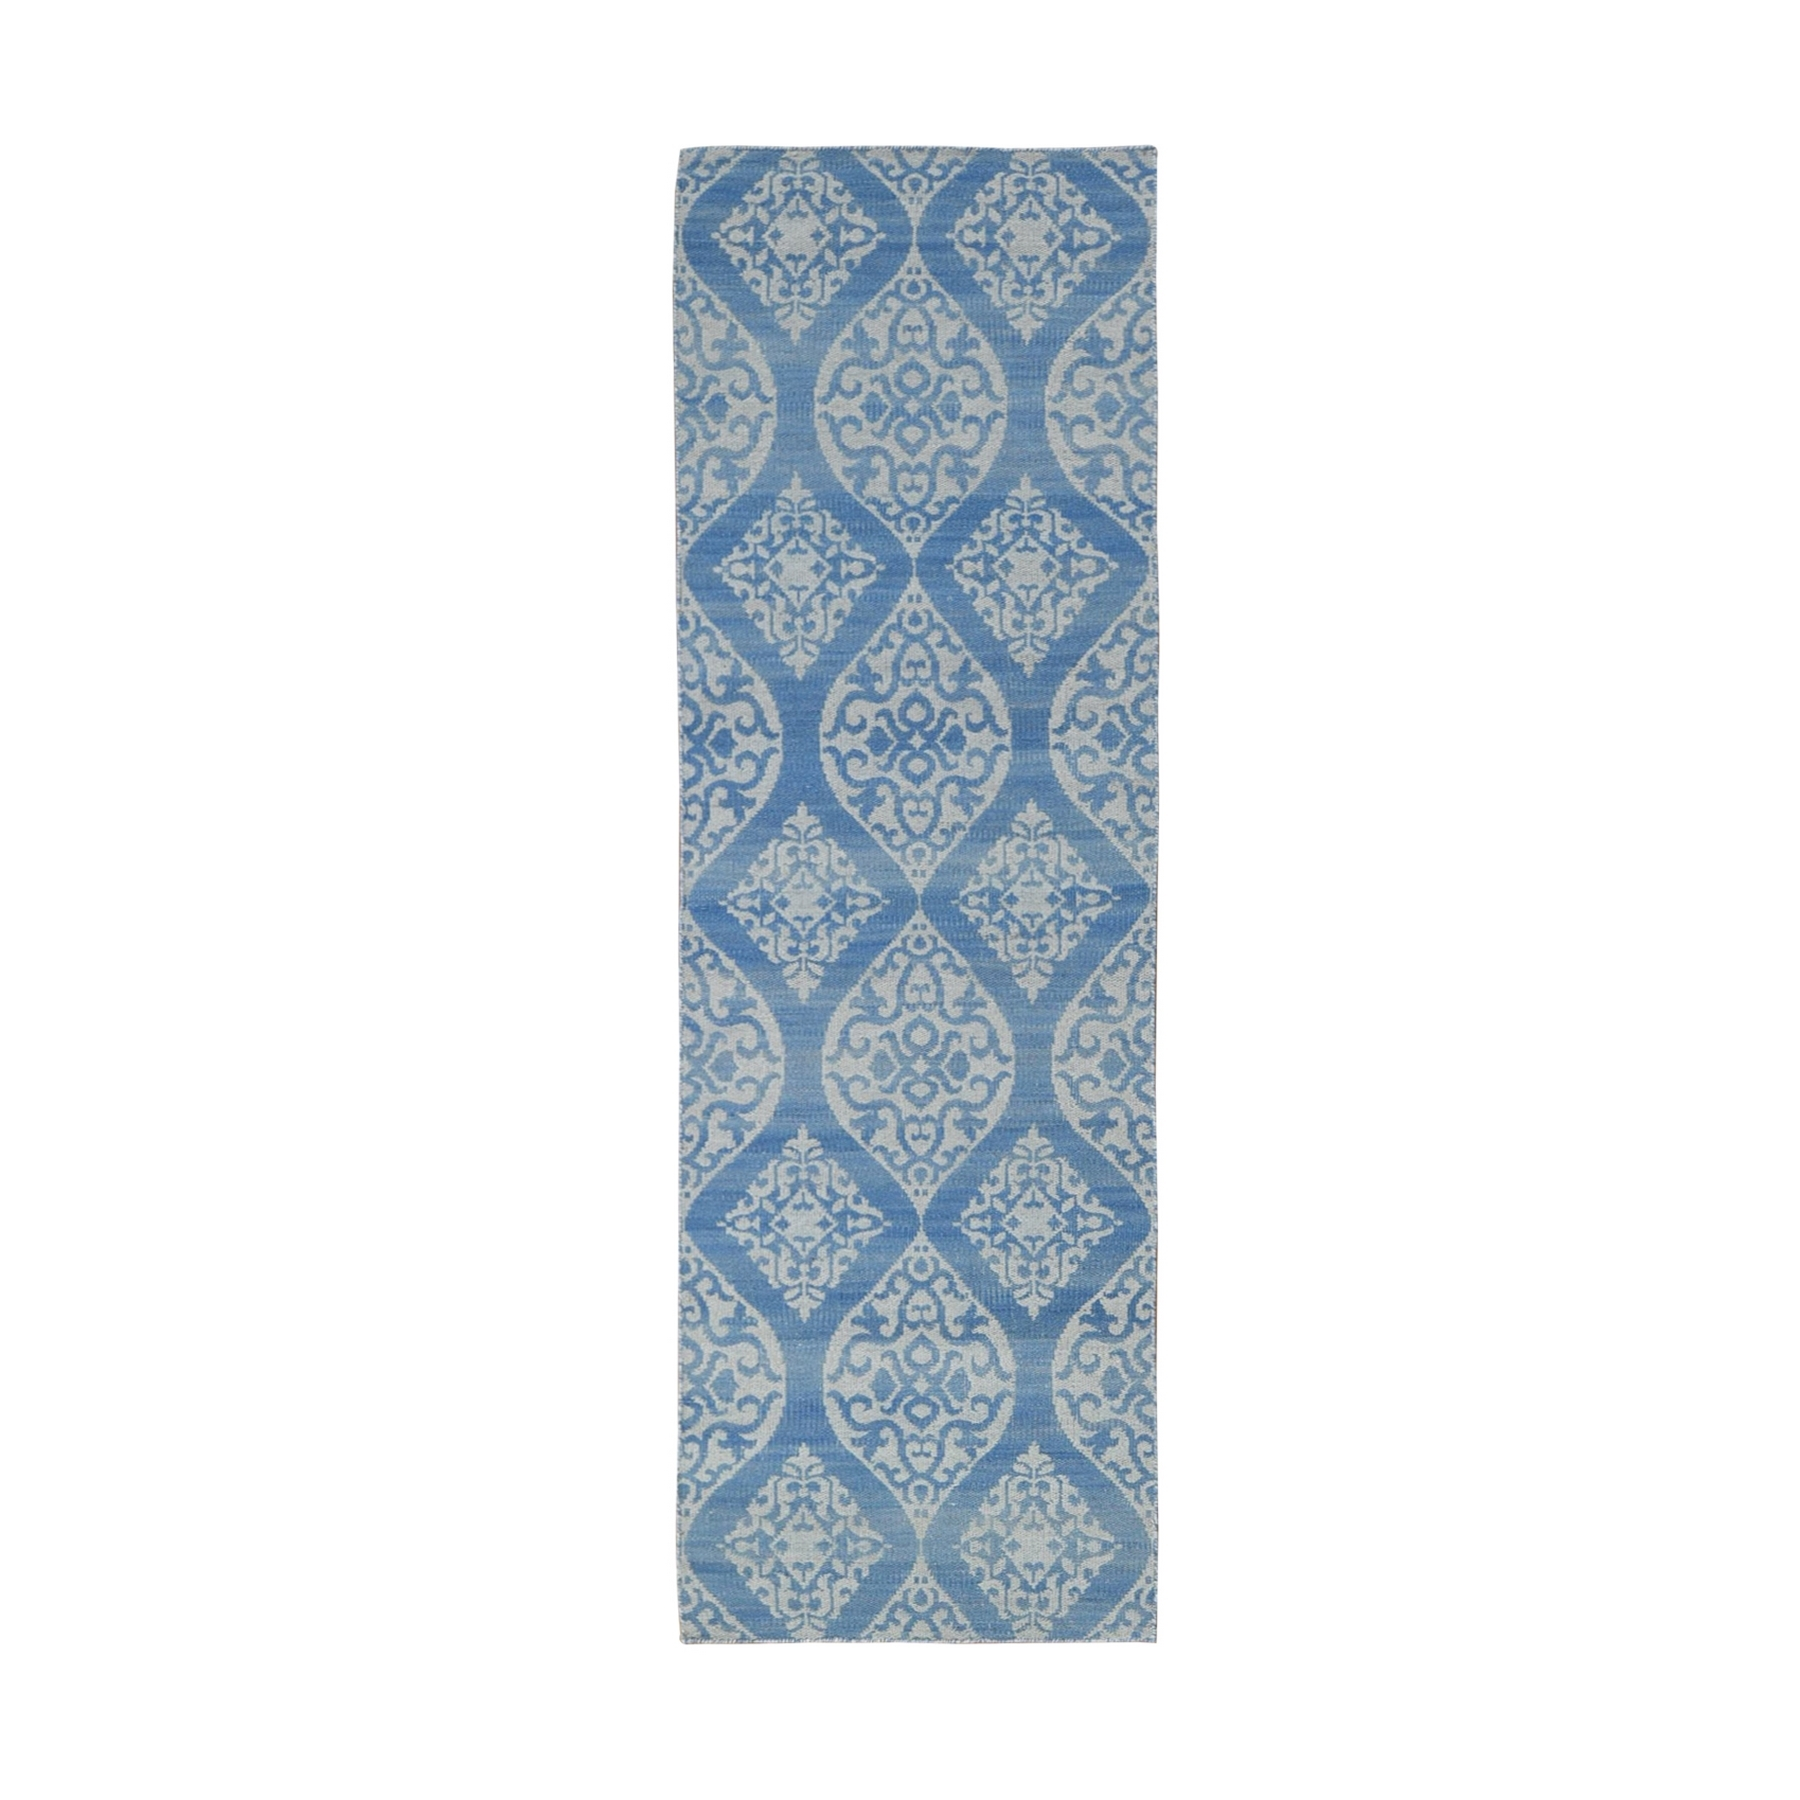 Fine Kilim Collection Hand Woven Blue Rug No: 1132192